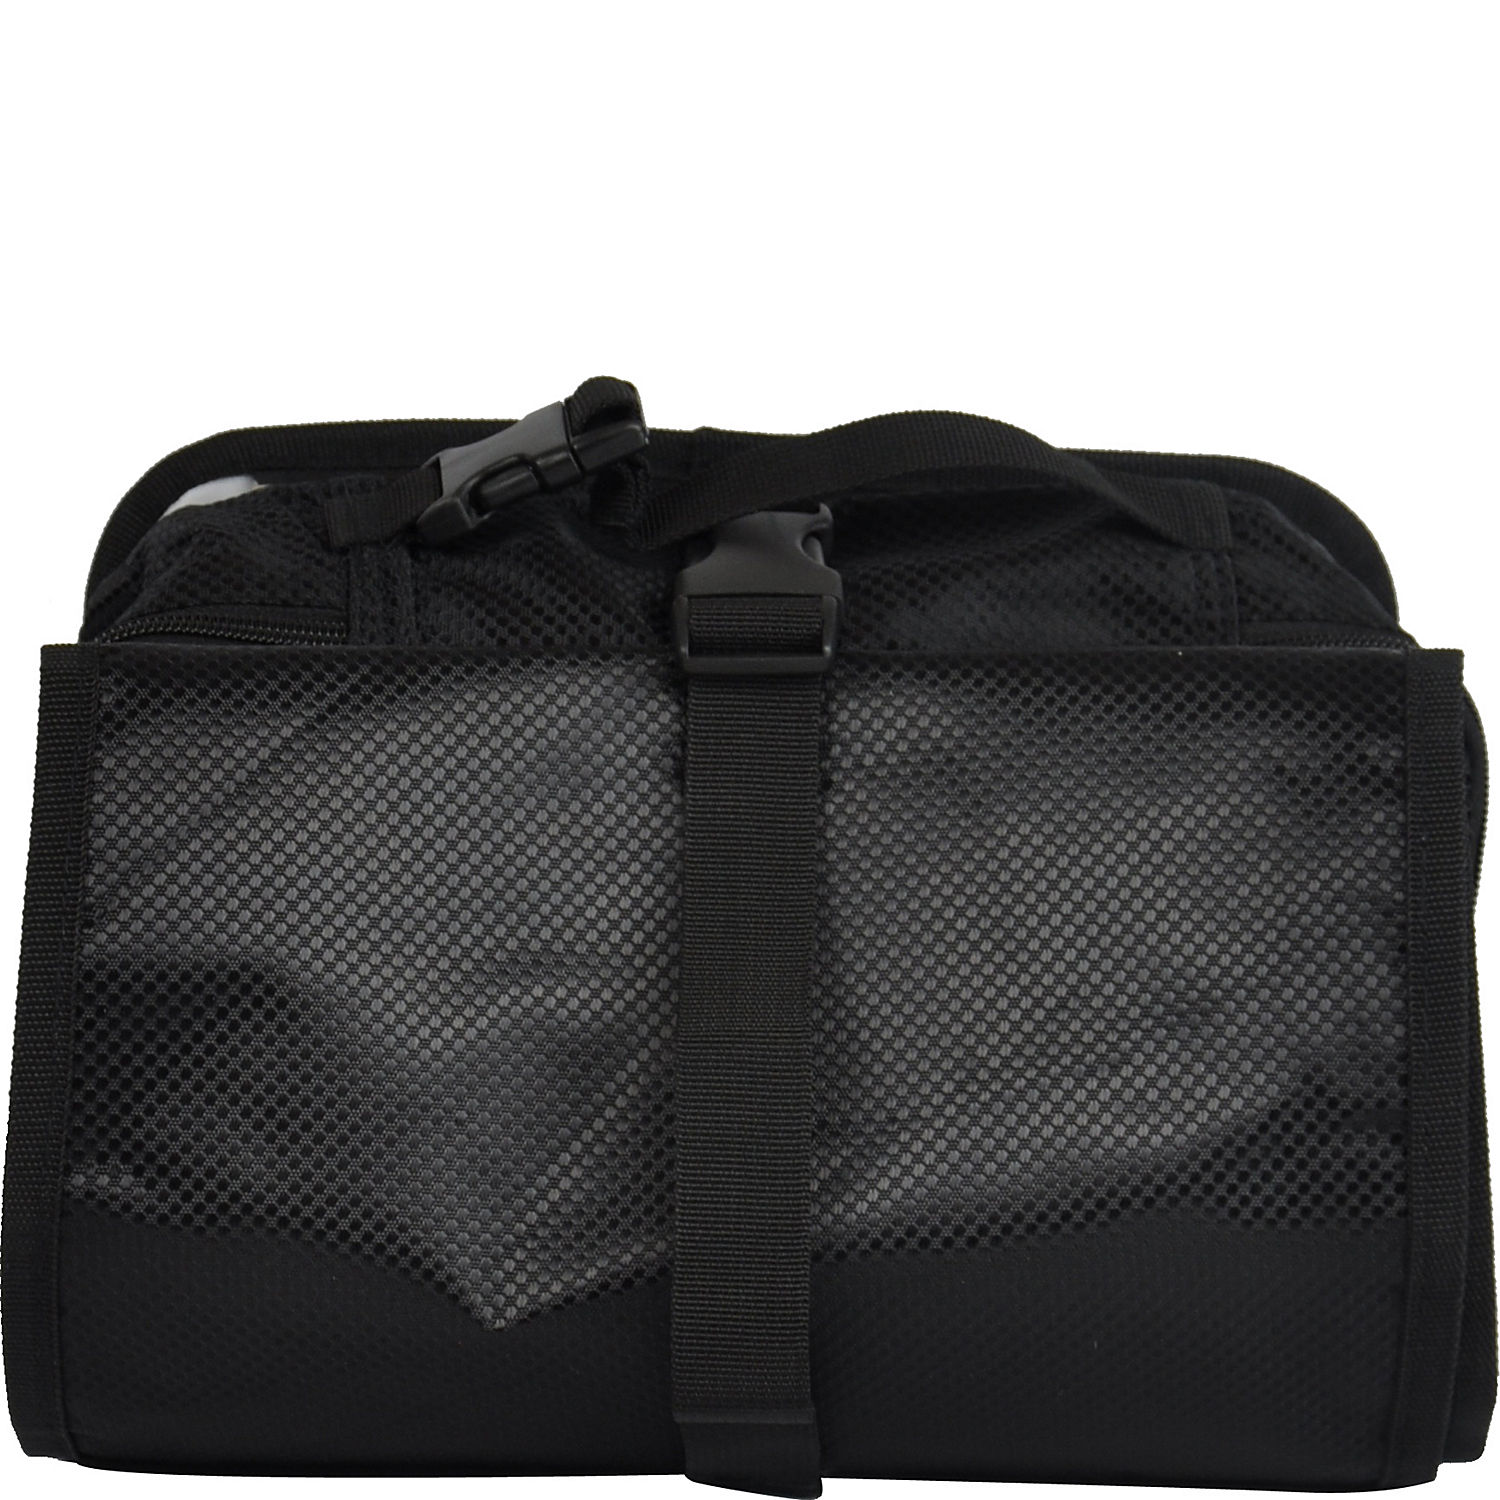 obersee extra large diaper changing station bag for travel and twins. Black Bedroom Furniture Sets. Home Design Ideas